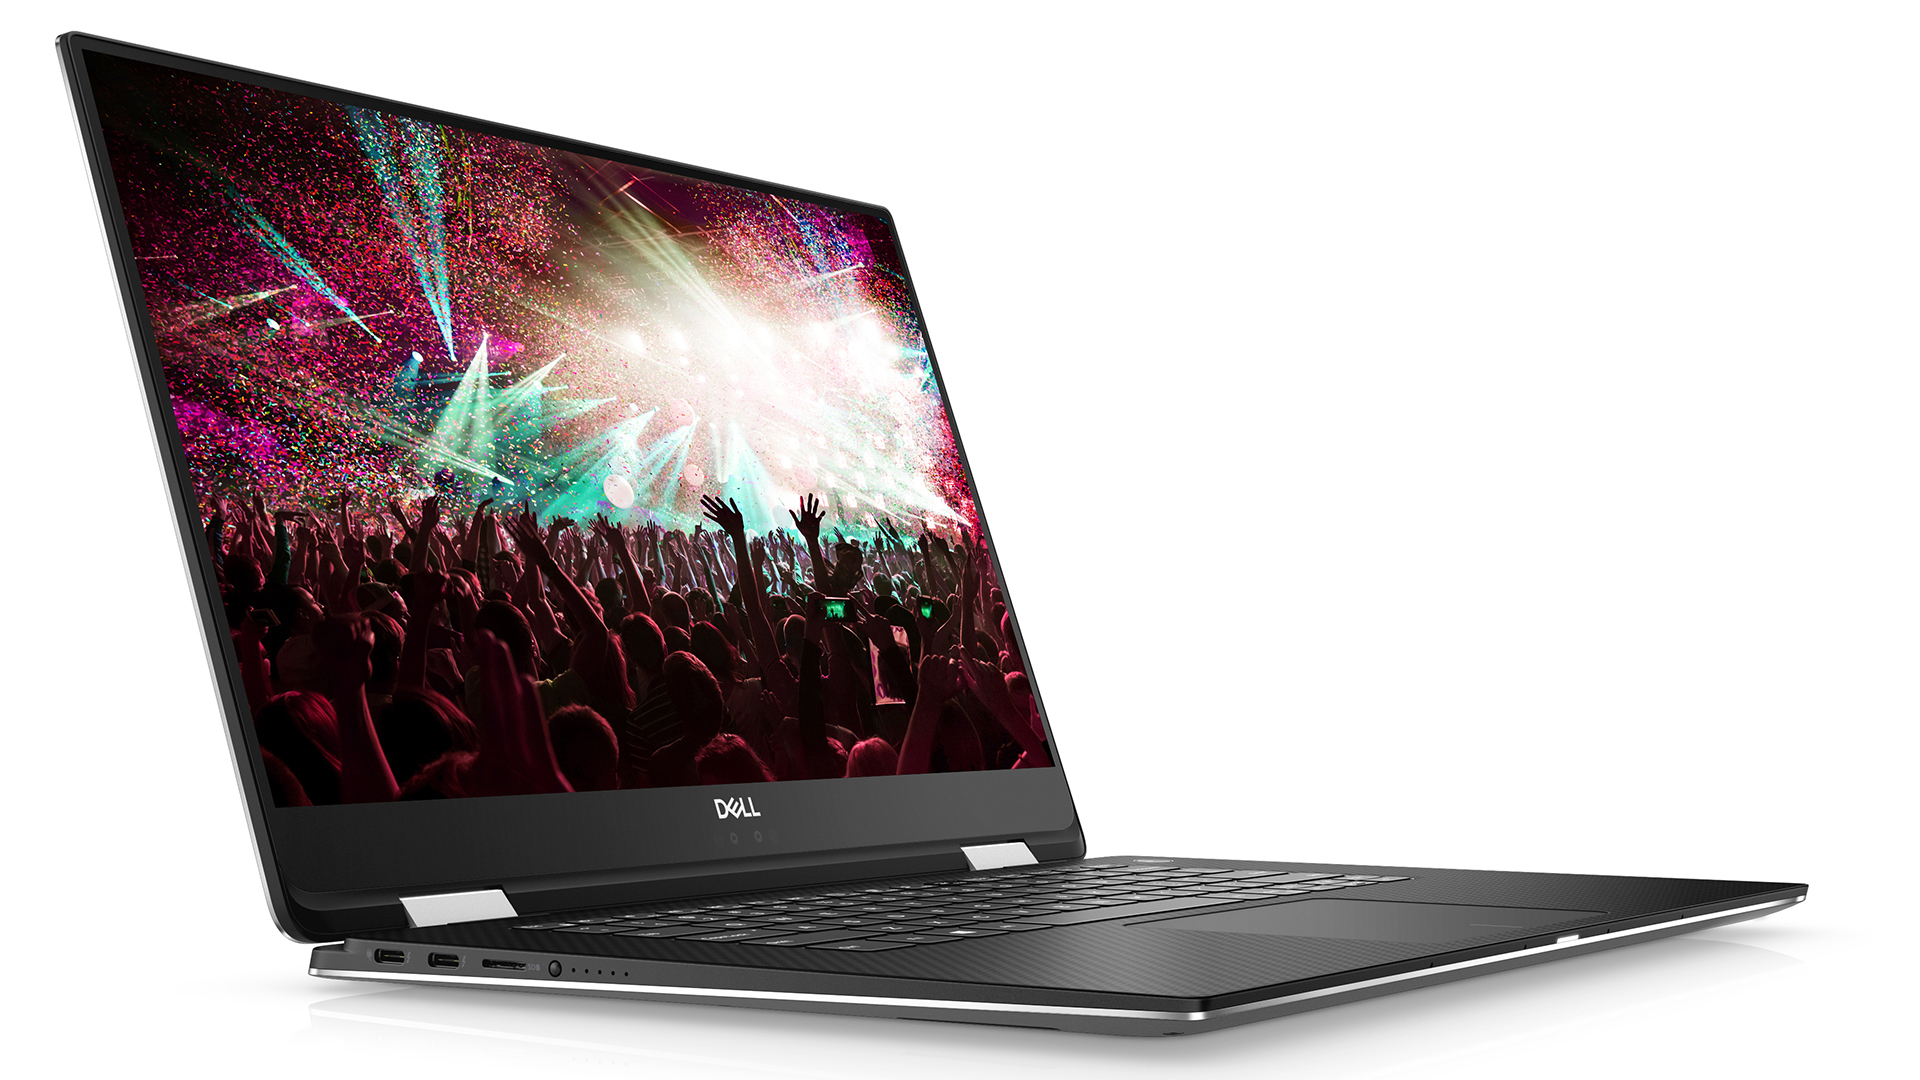 The best Dell laptops: Dell XPS 15 2-in-1